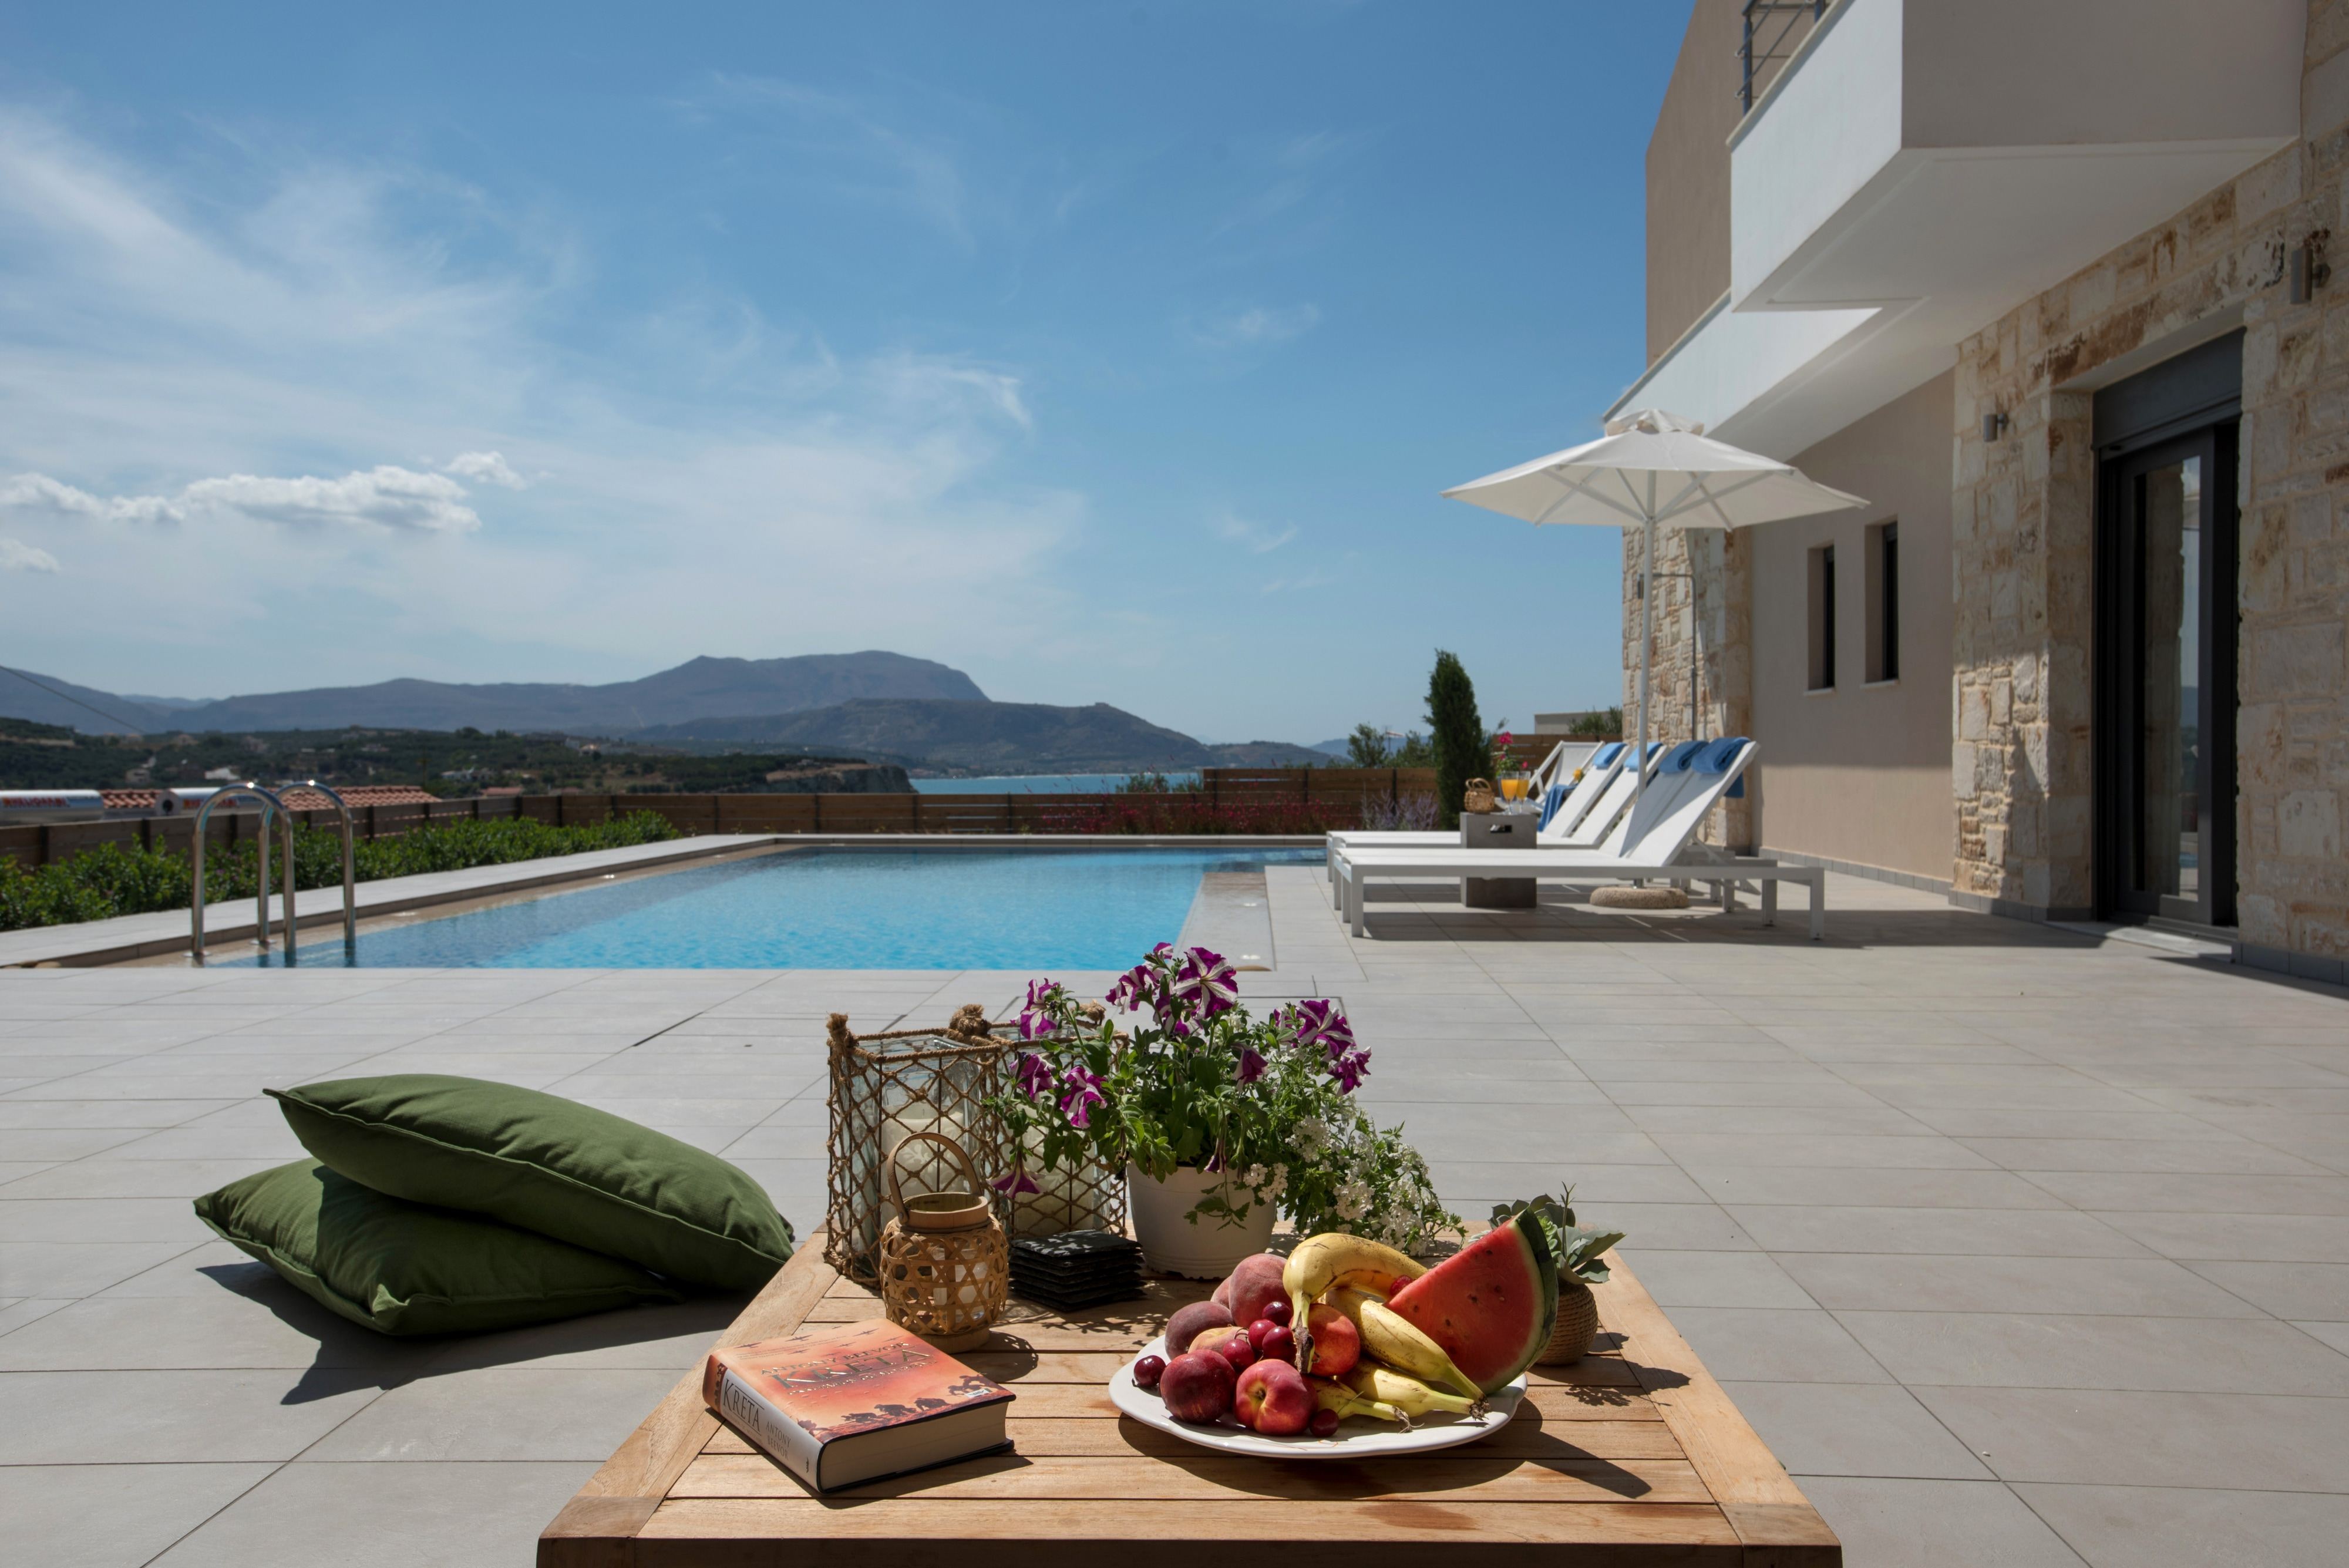 Property Image 2 - Contemporary villa with aesthetic interior design and private pool